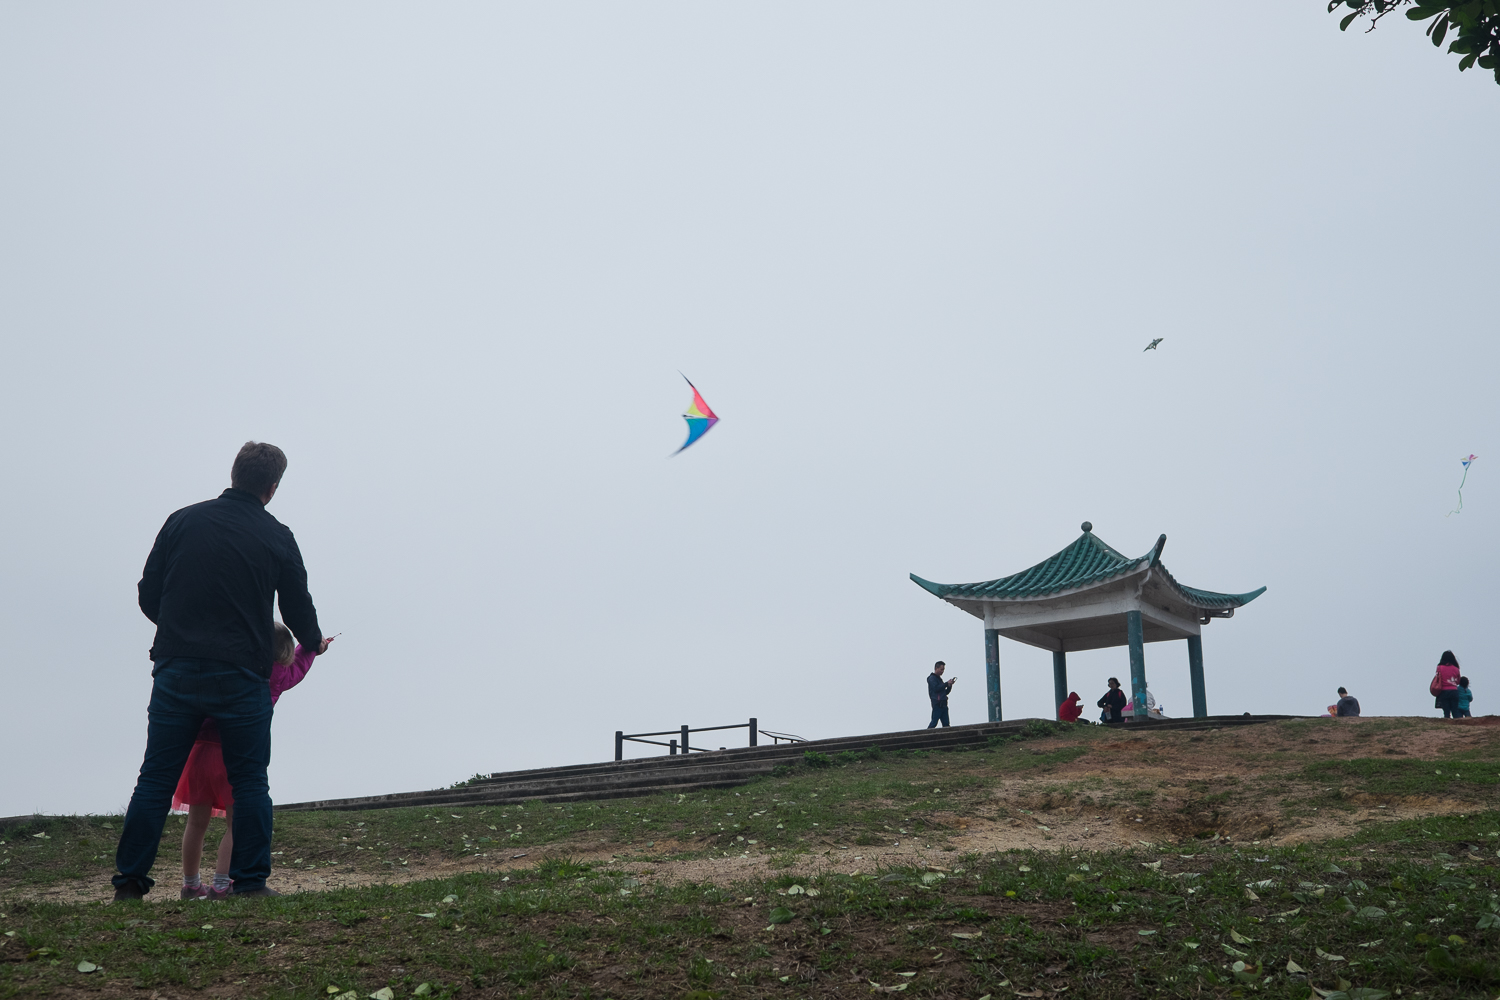 nicola_berry_photography_12_kite flying_hong kong.jpg